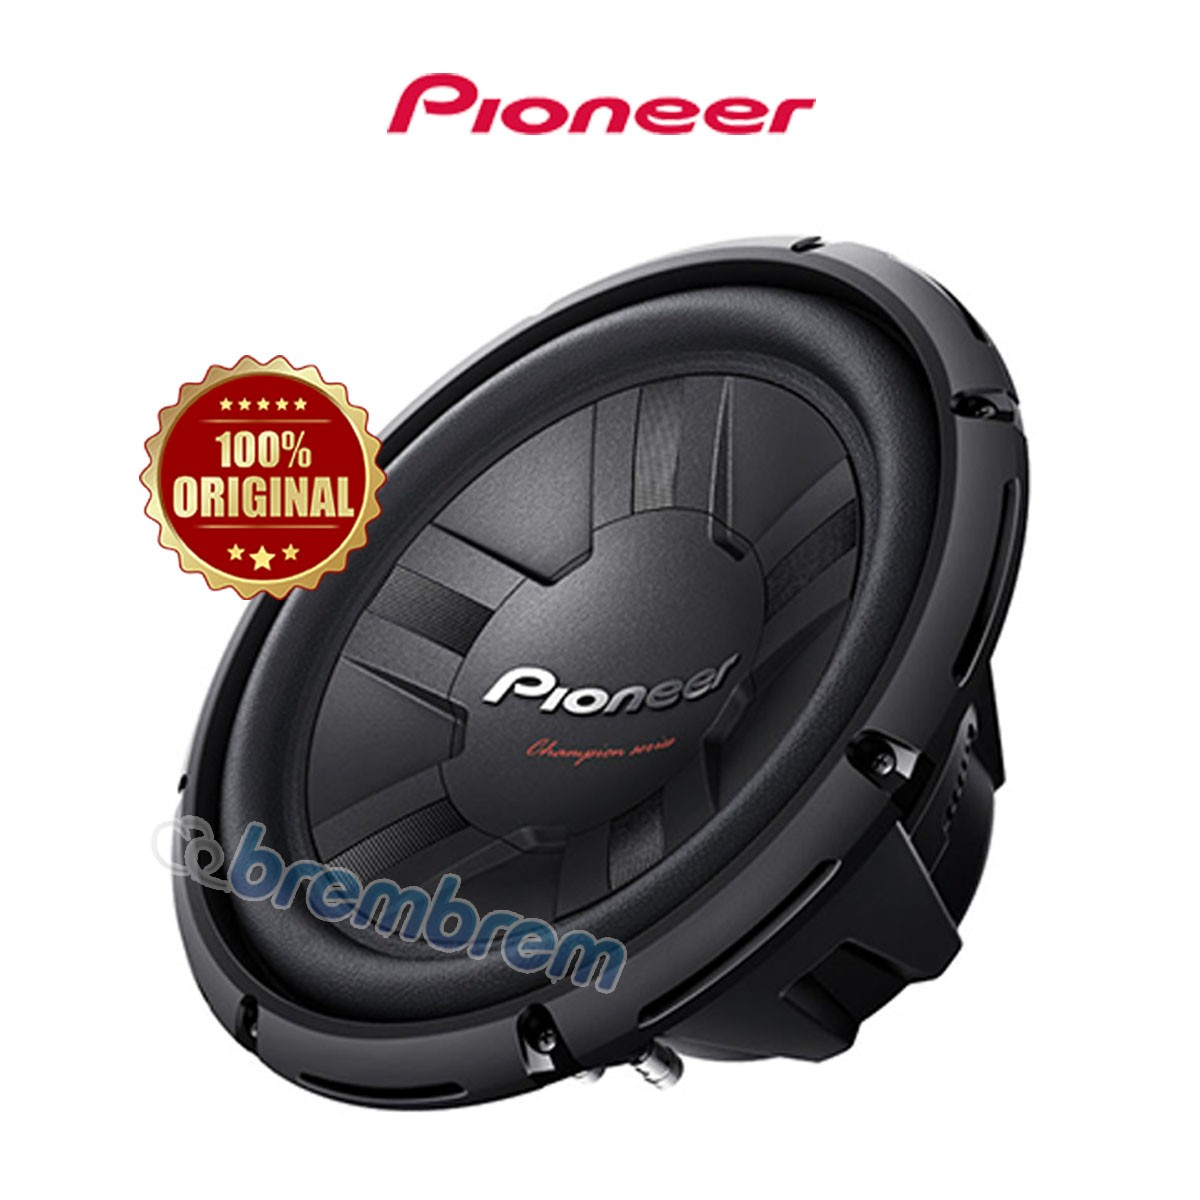 PIONEER TS-W311D4 - SUBWOOFER PASIF